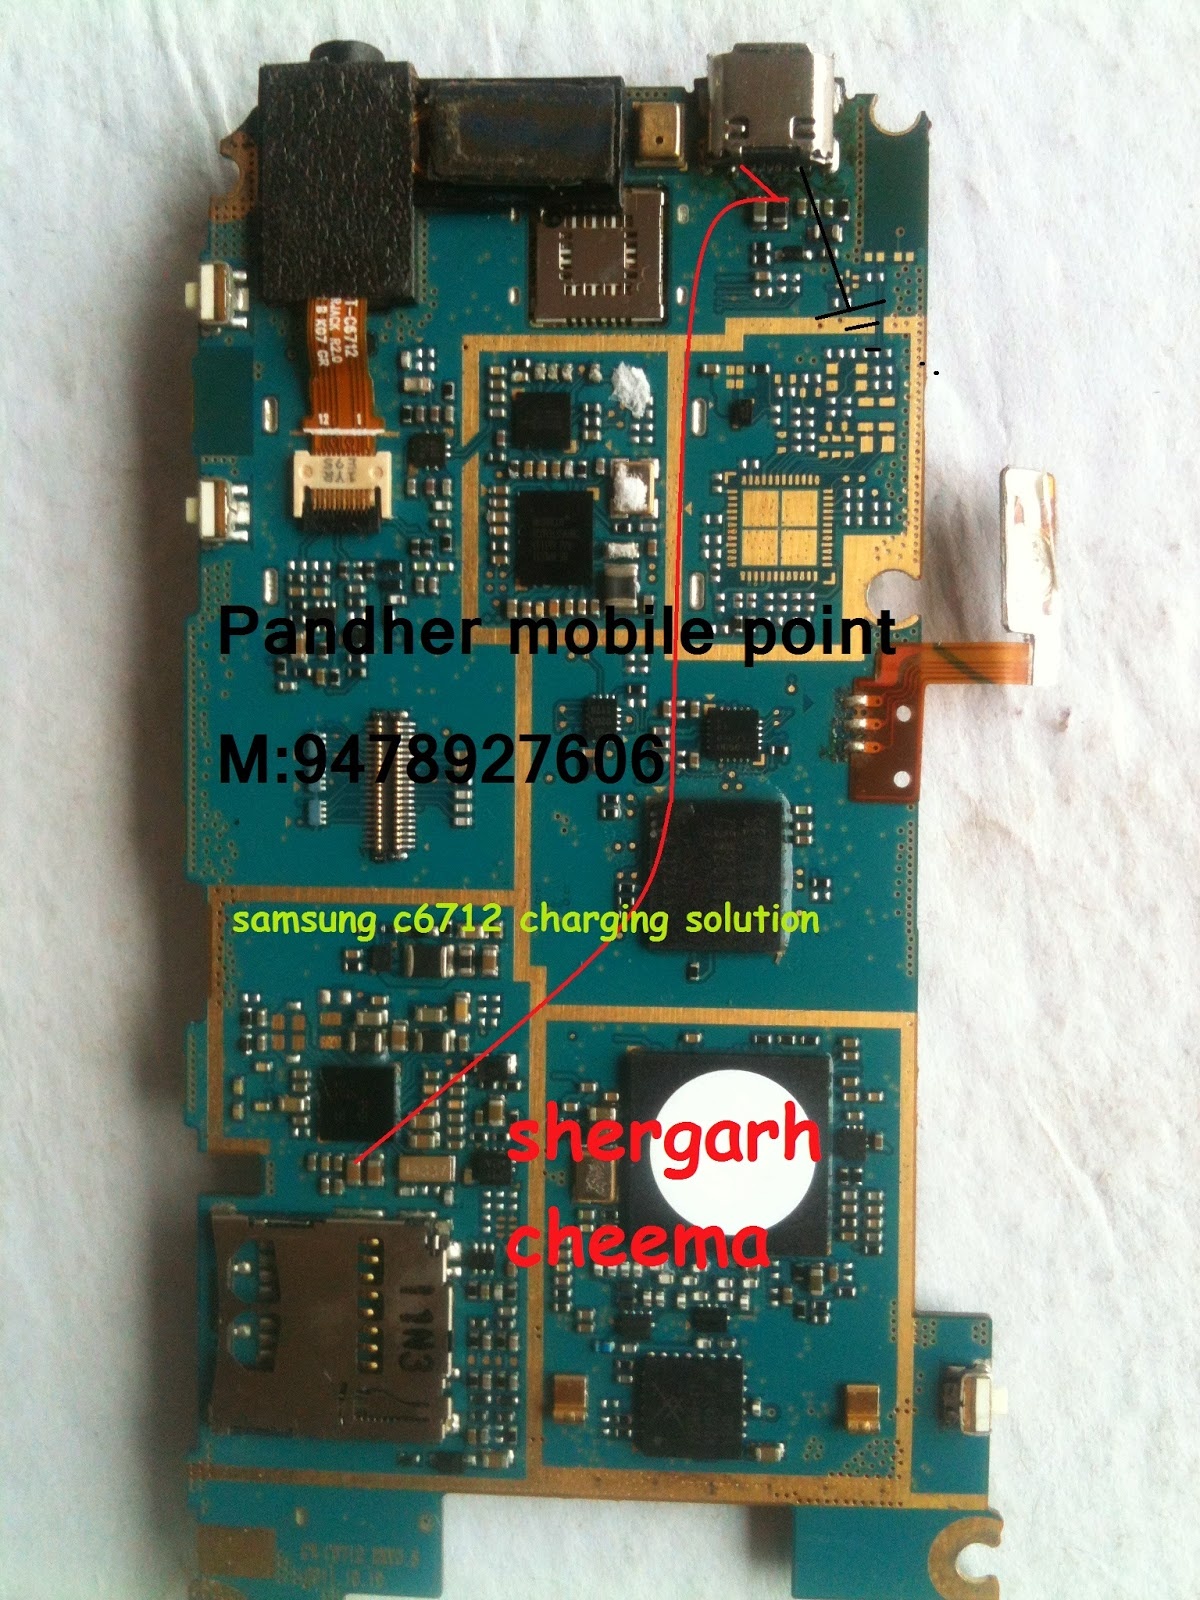 Samsung gt s7262 usb charging problem solution jumper ways - Samsung C6712 Charging Problem Solution